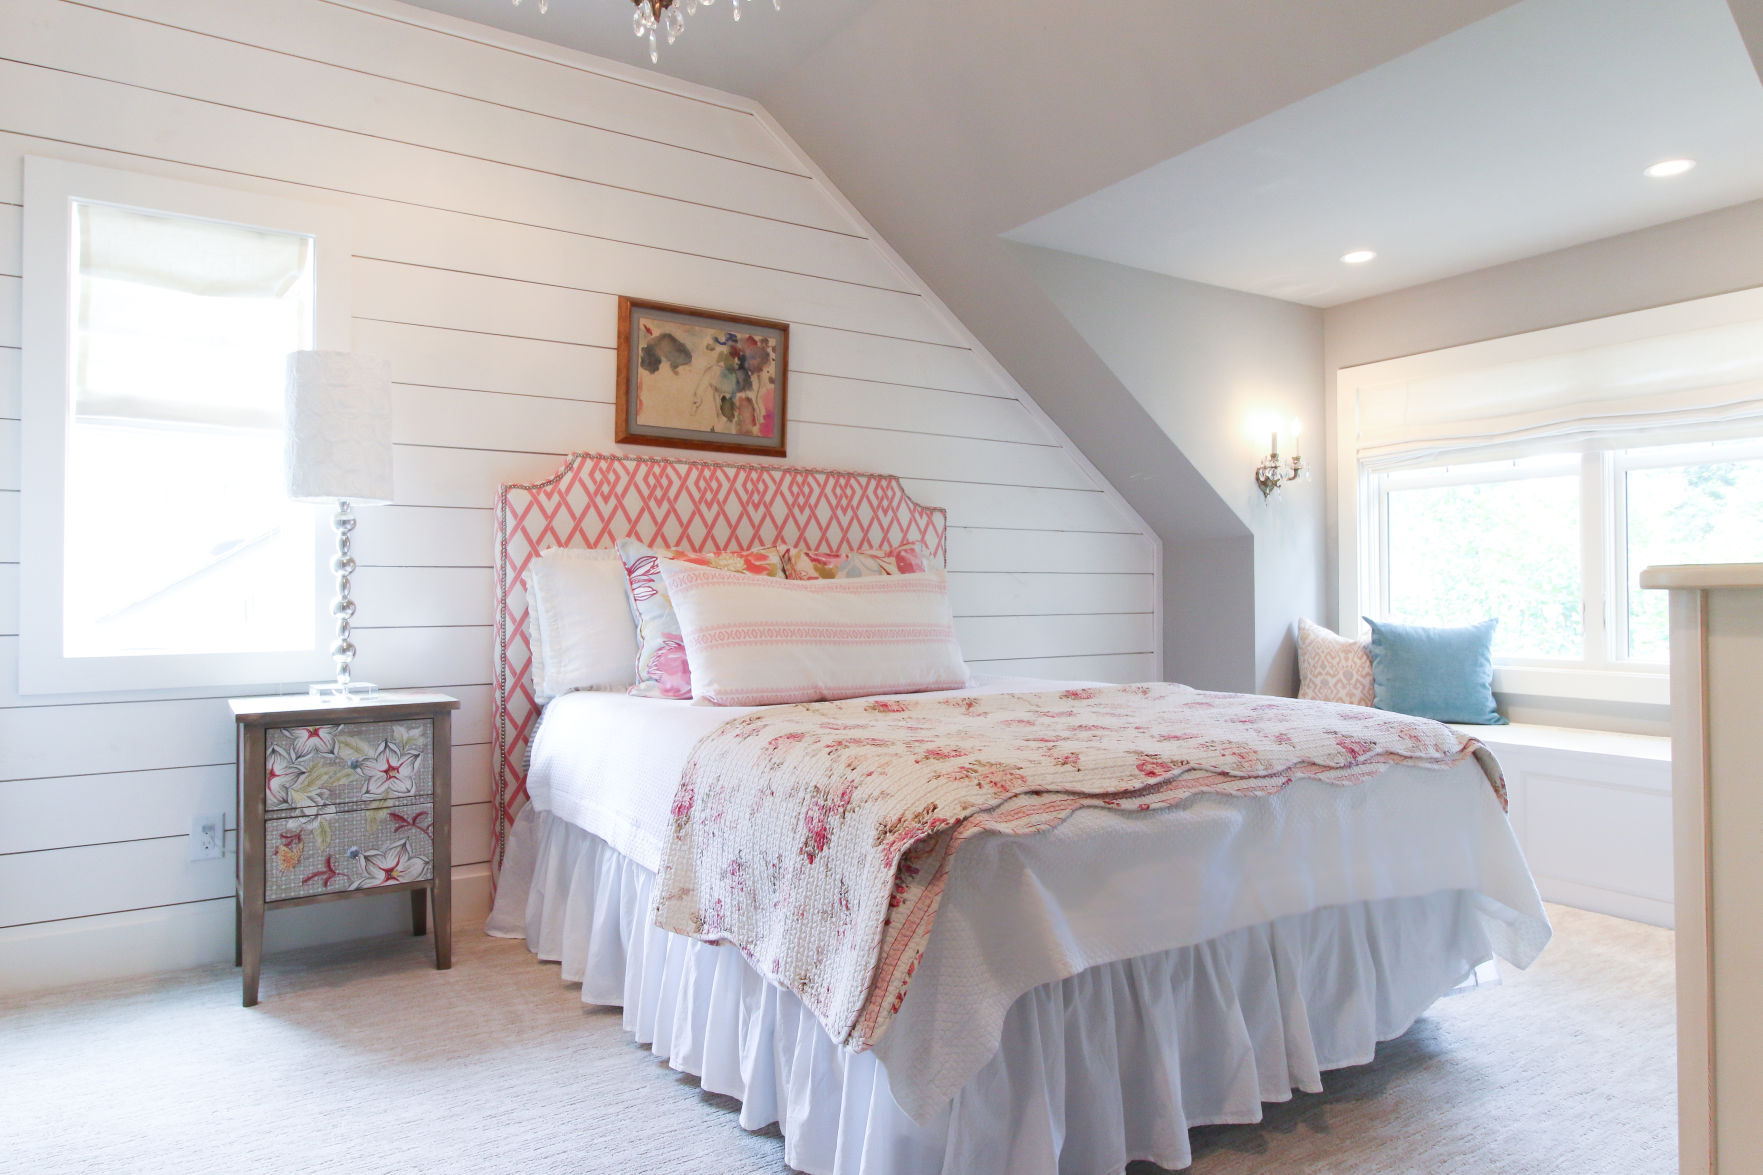 10 home design trends to watch in